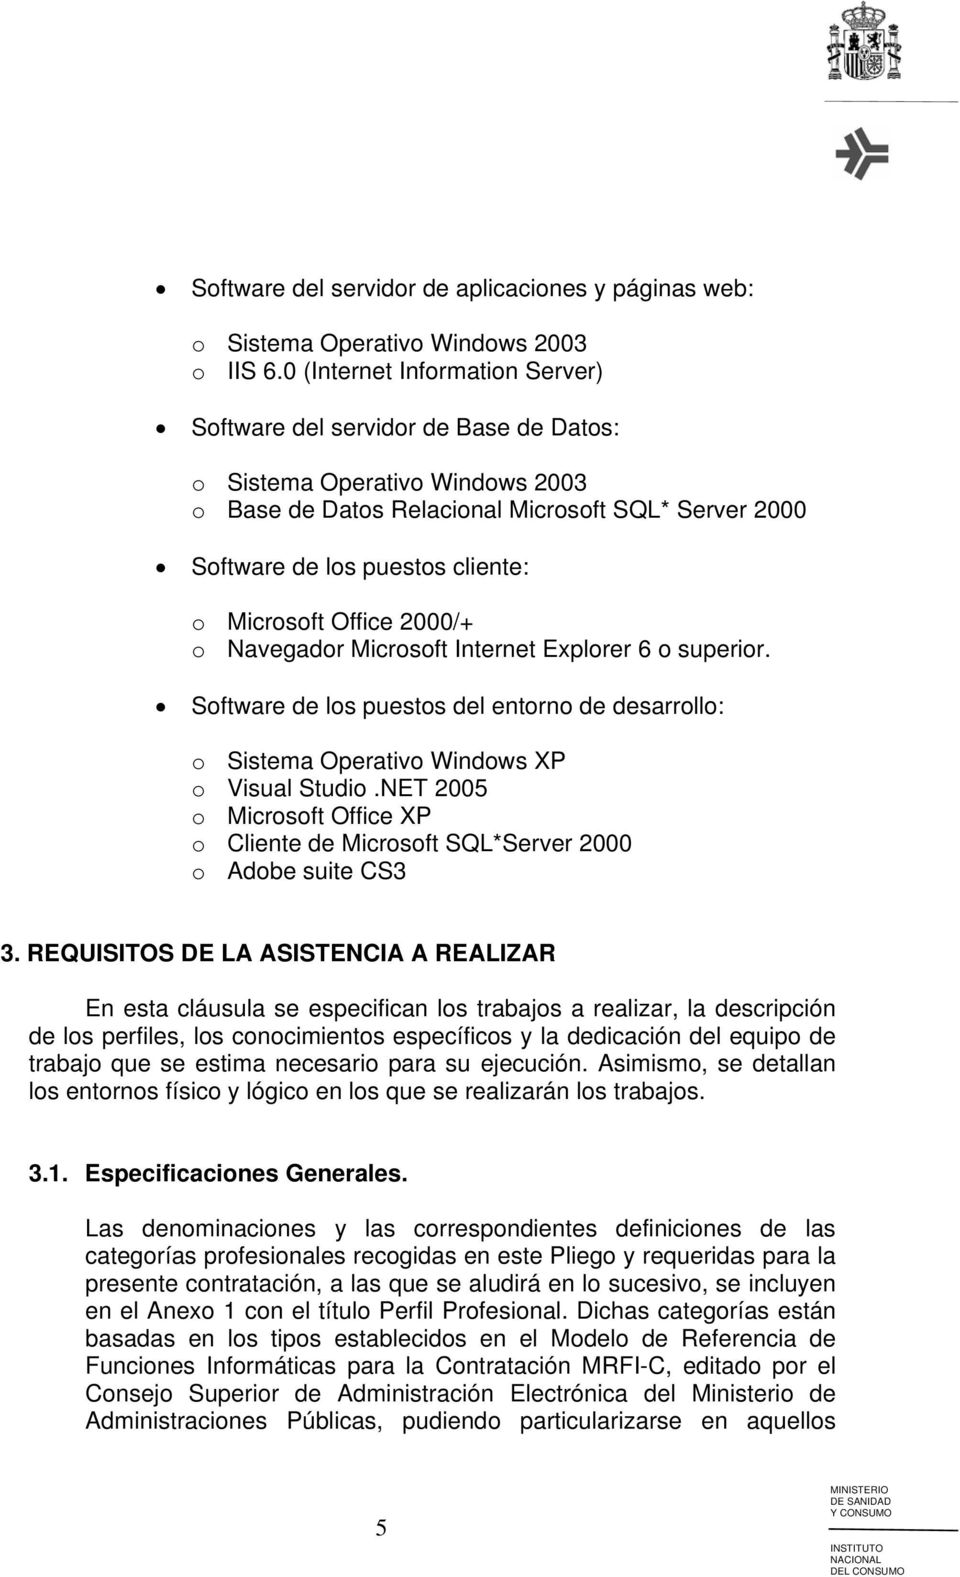 Microsoft Office 2000/+ o Navegador Microsoft Internet Explorer 6 o superior. Software de los puestos del entorno de desarrollo: o Sistema Operativo Windows XP o Visual Studio.